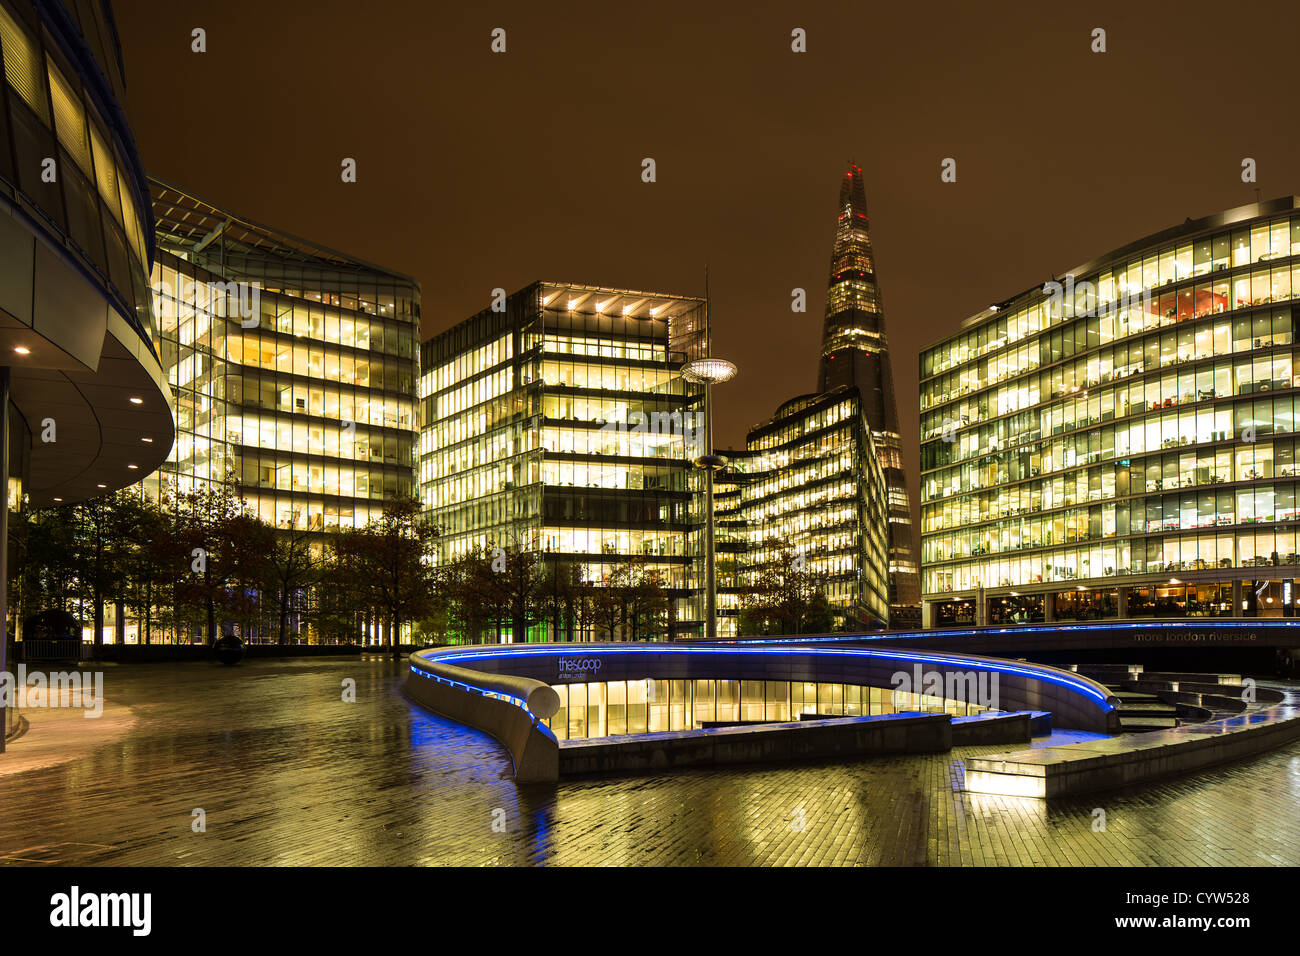 London Assembly and The Shard at night - Stock Image